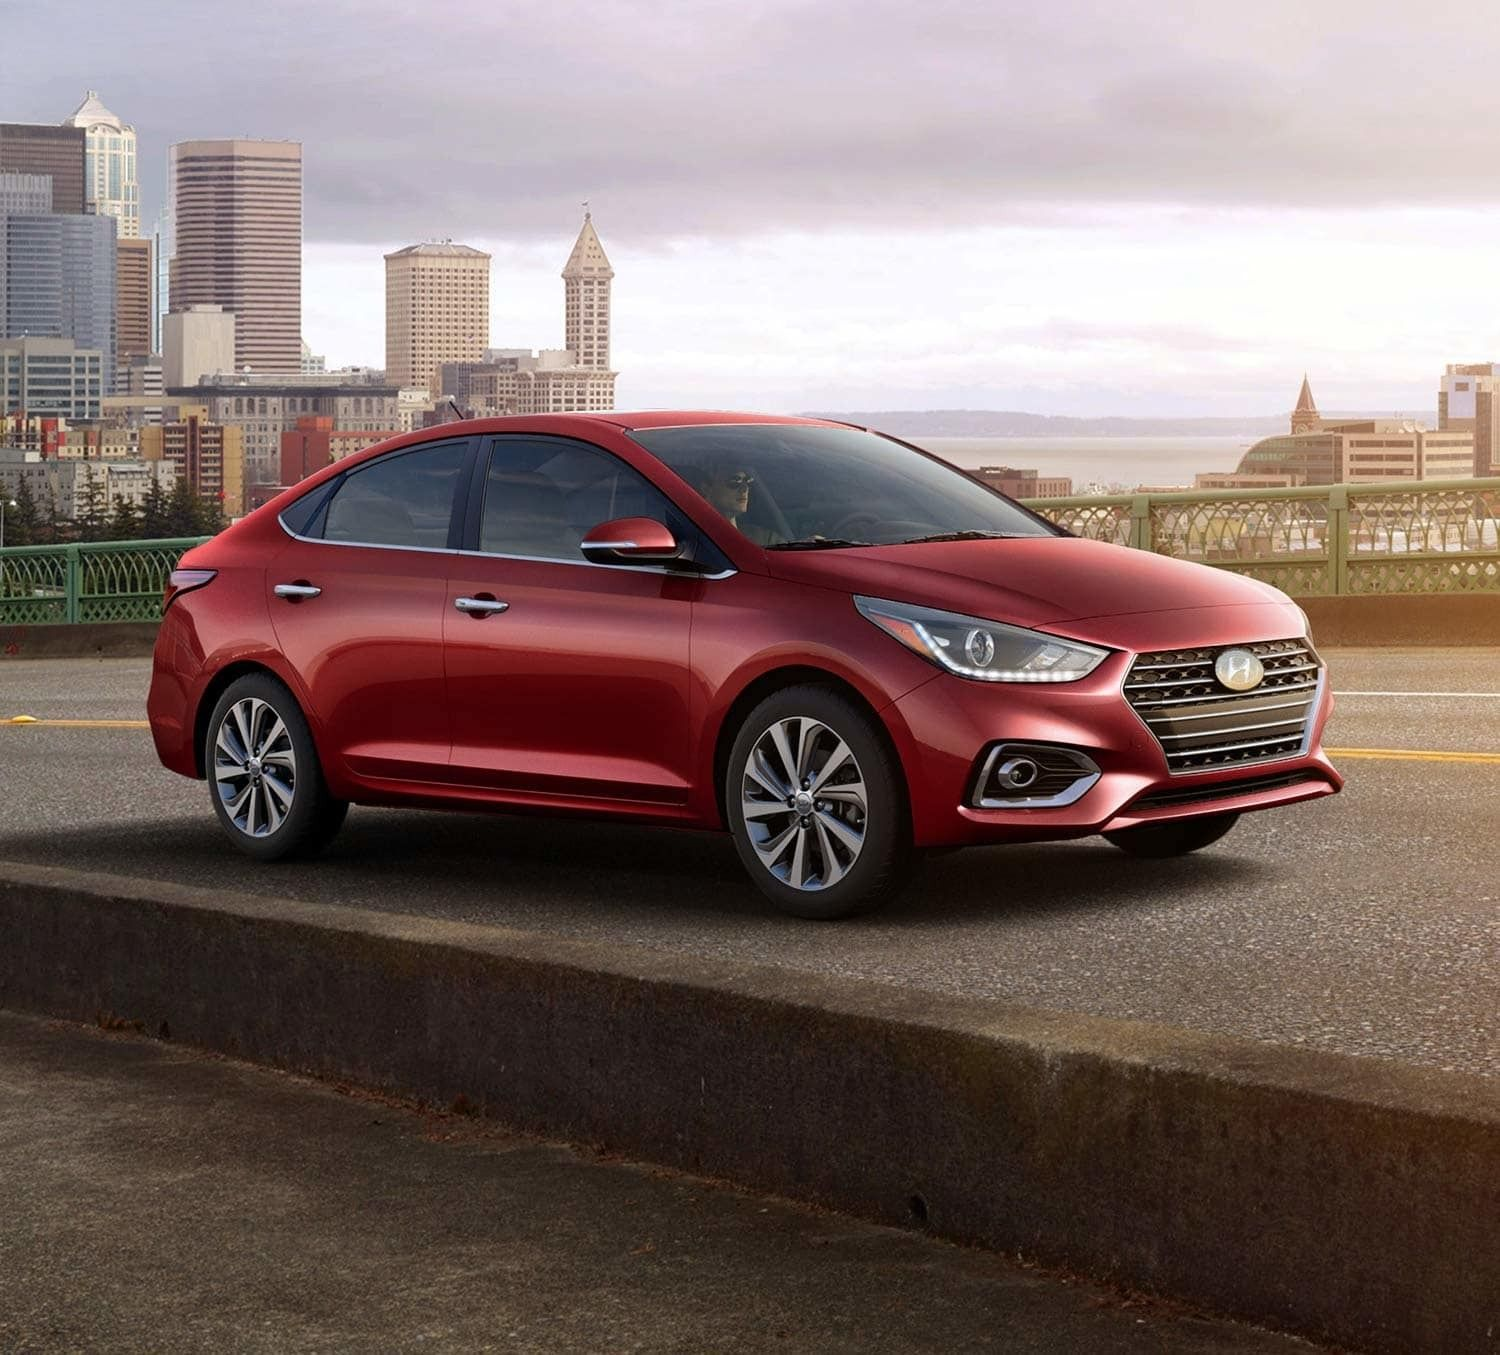 2019 Hyundai Accent Gls Review Specs And Release Date Redesign Price And Review Concept Redesign And Review Relea Hyundai Accent Hyundai Accent Hatchback